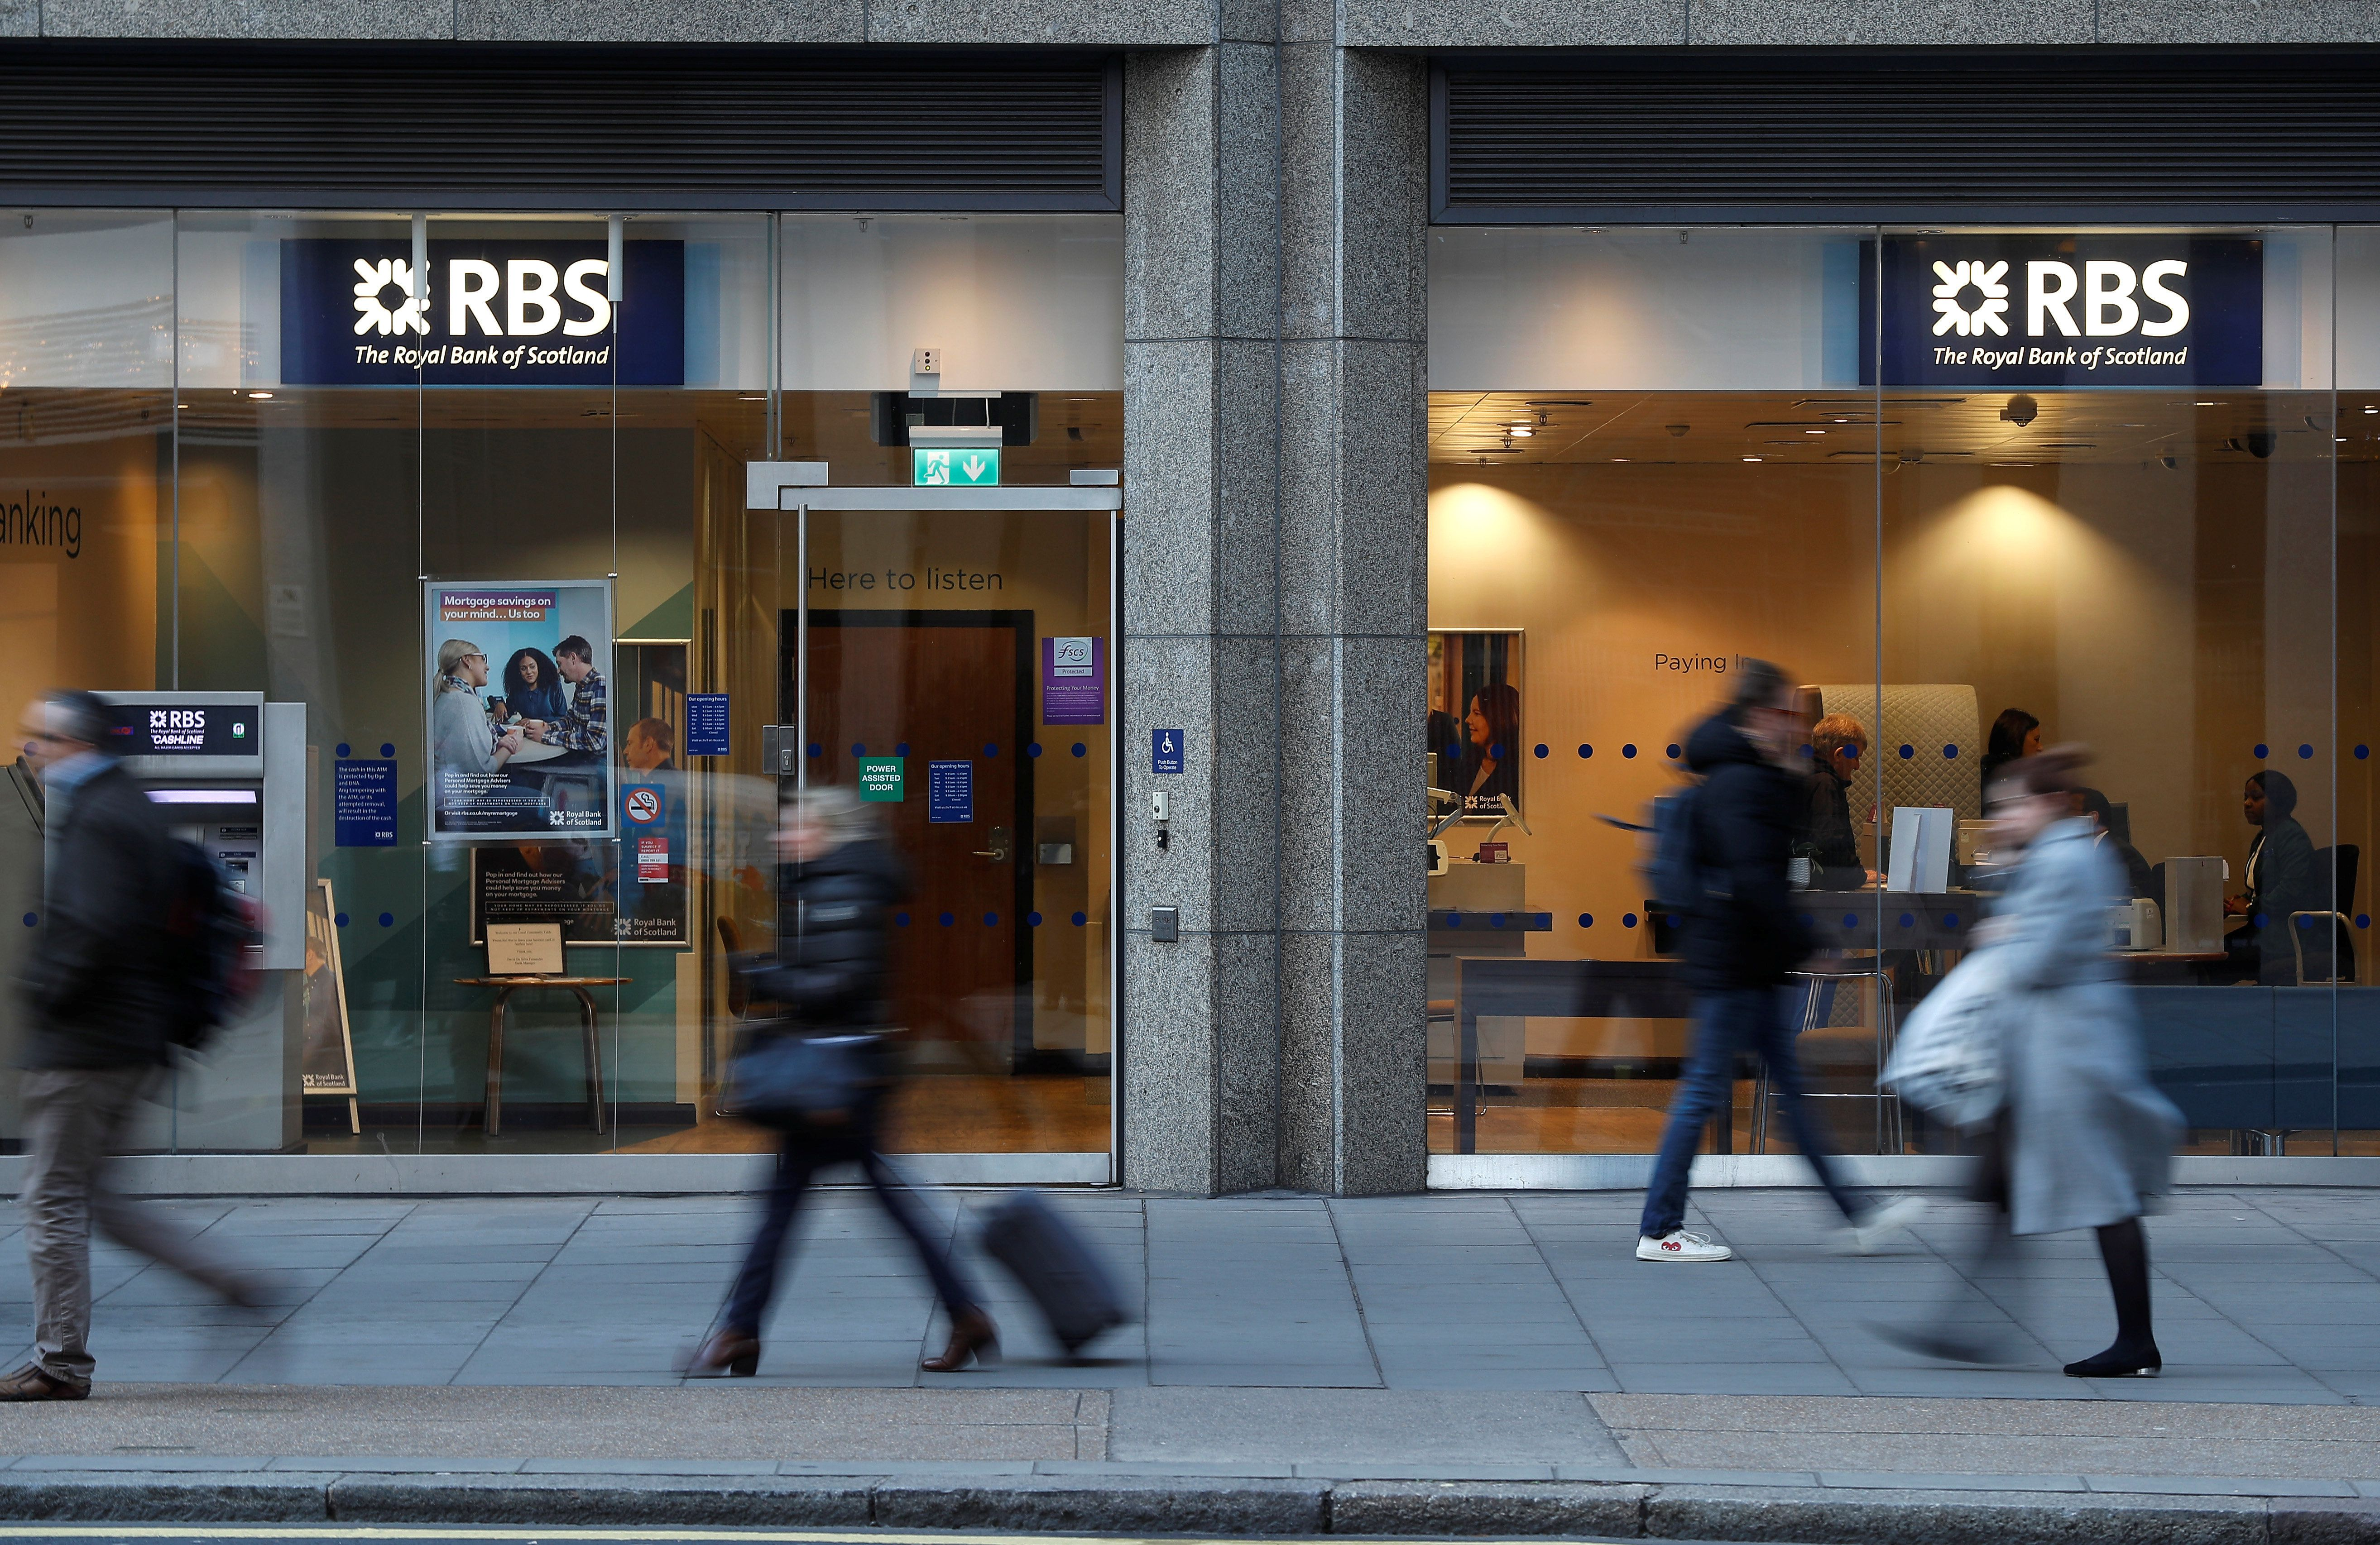 The Royal Bank of Scotland has announced further branch closures